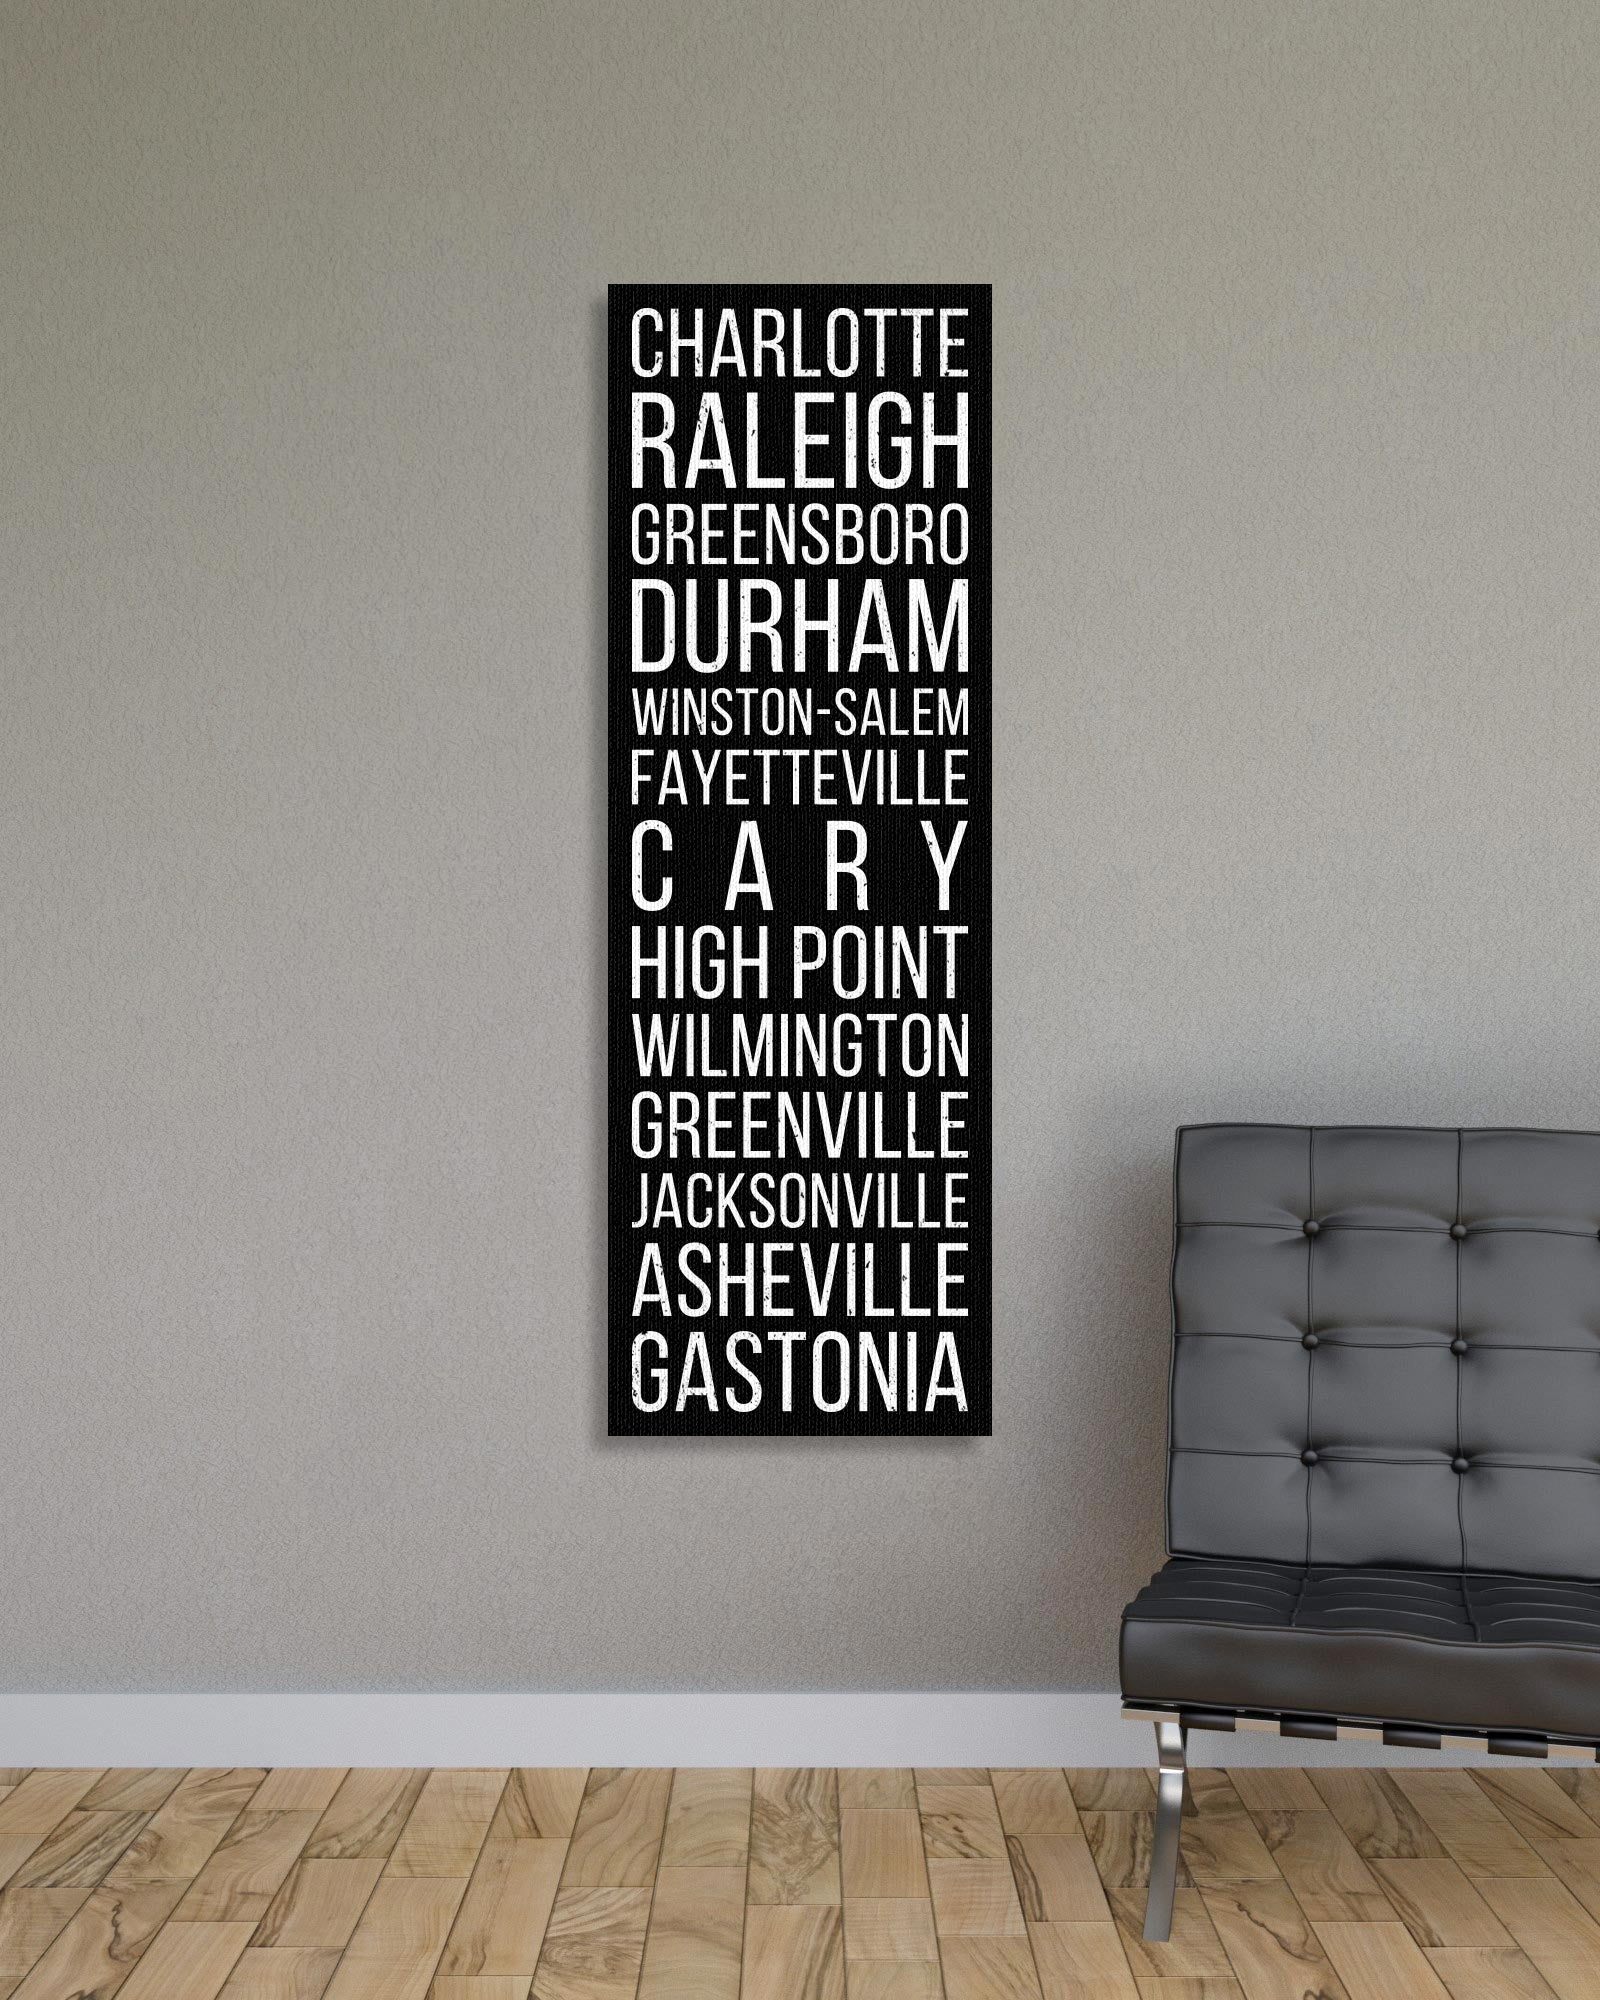 North Carolina Charlotte Raleigh Greensboro Bus Scroll Subway Canvas Print